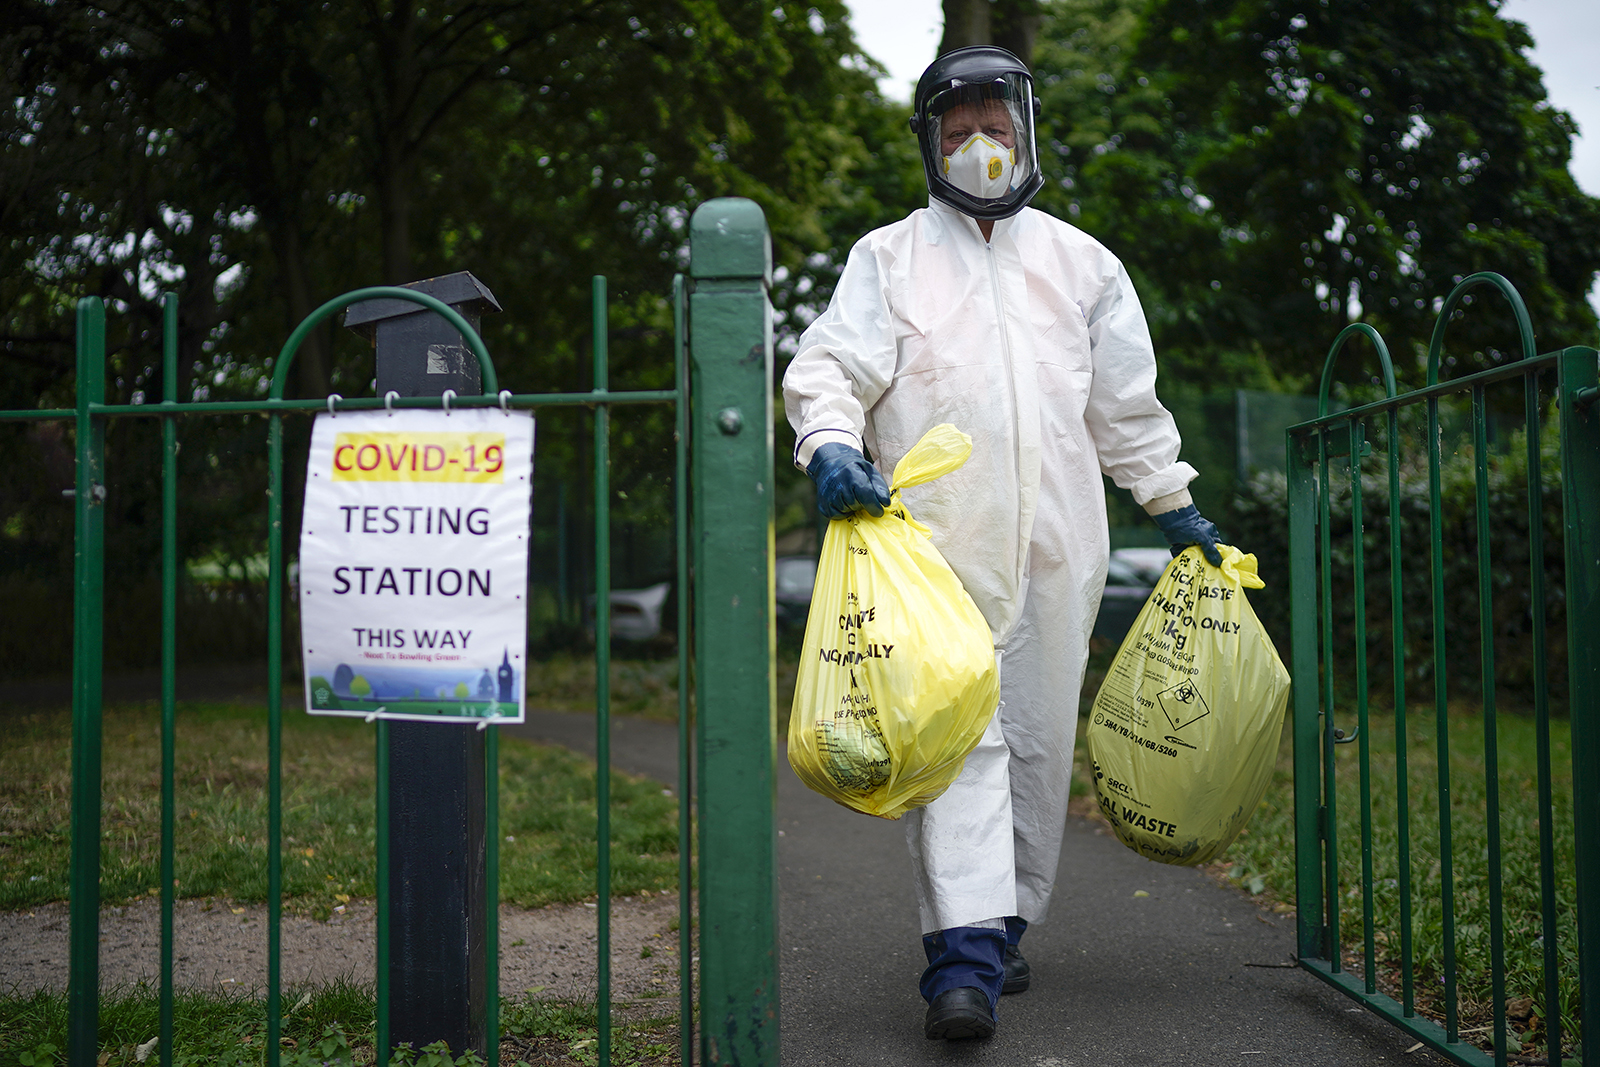 A city council worker carries rubbish from a coronavirus testing centre at Spinney Park on June 29, 2020 in Leicester, England.